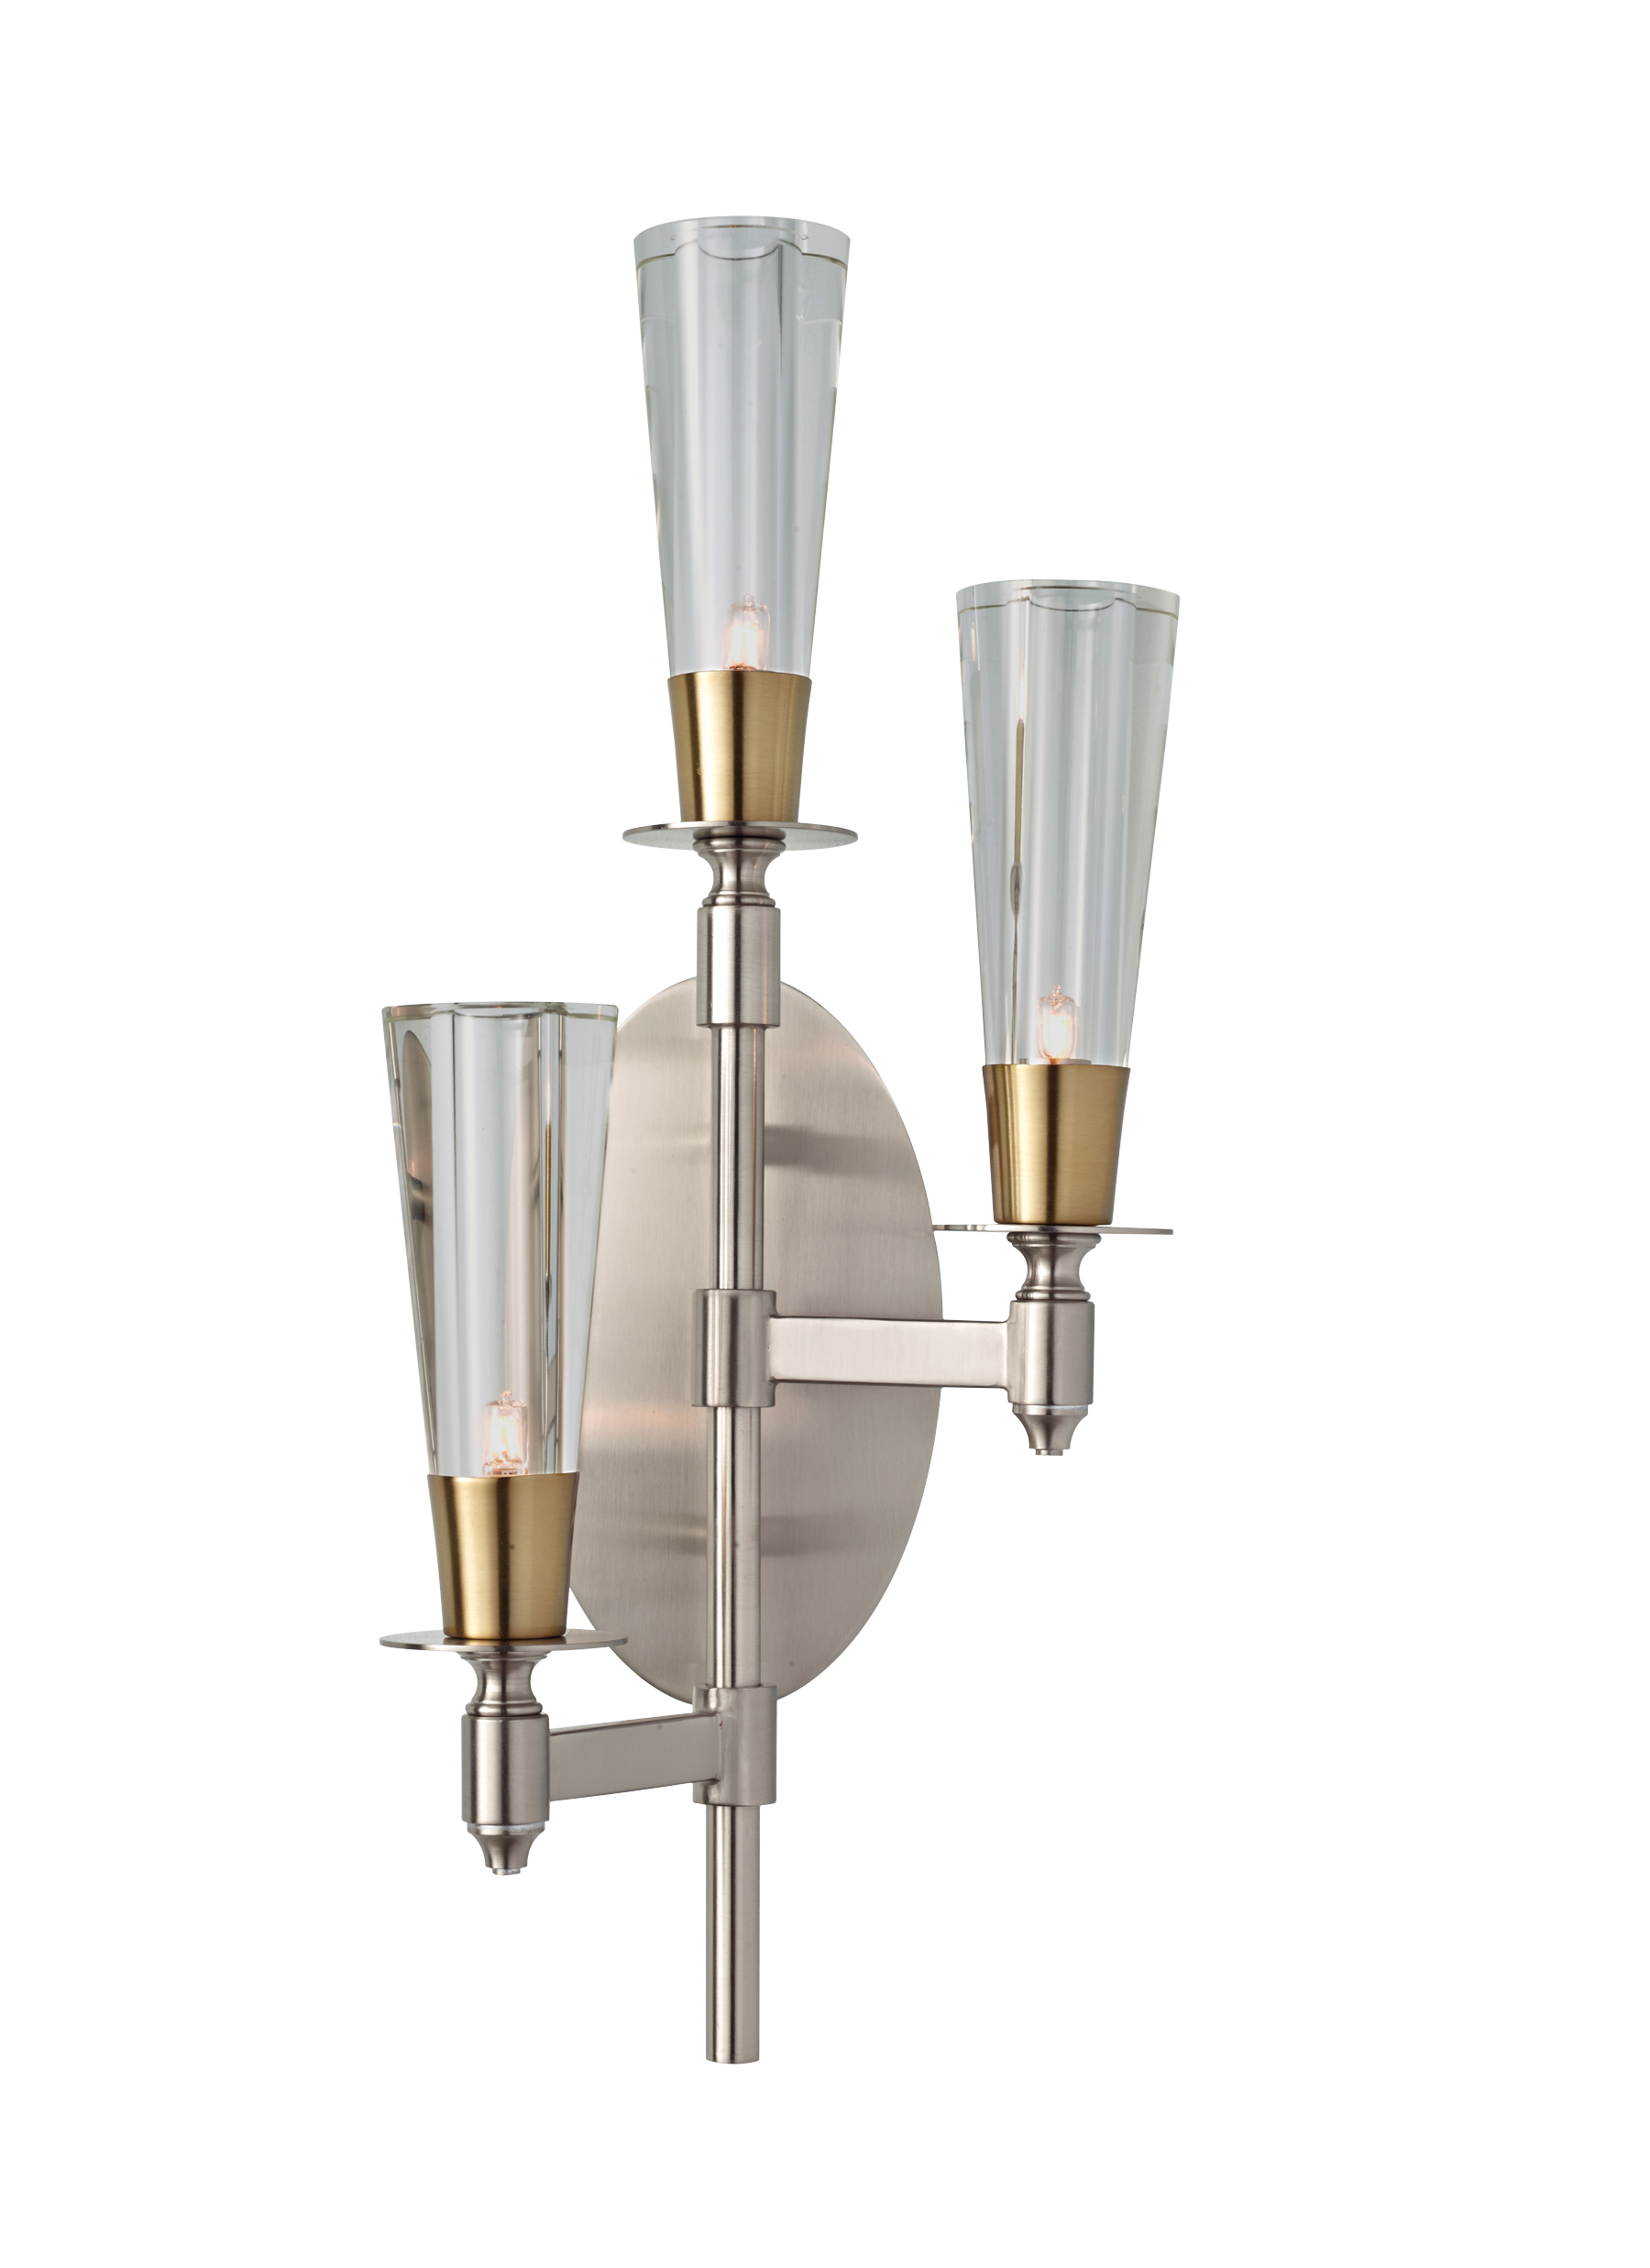 Wb1607bn Nb 3 Light Wall Sconce Brushed Nickel Natural Brass